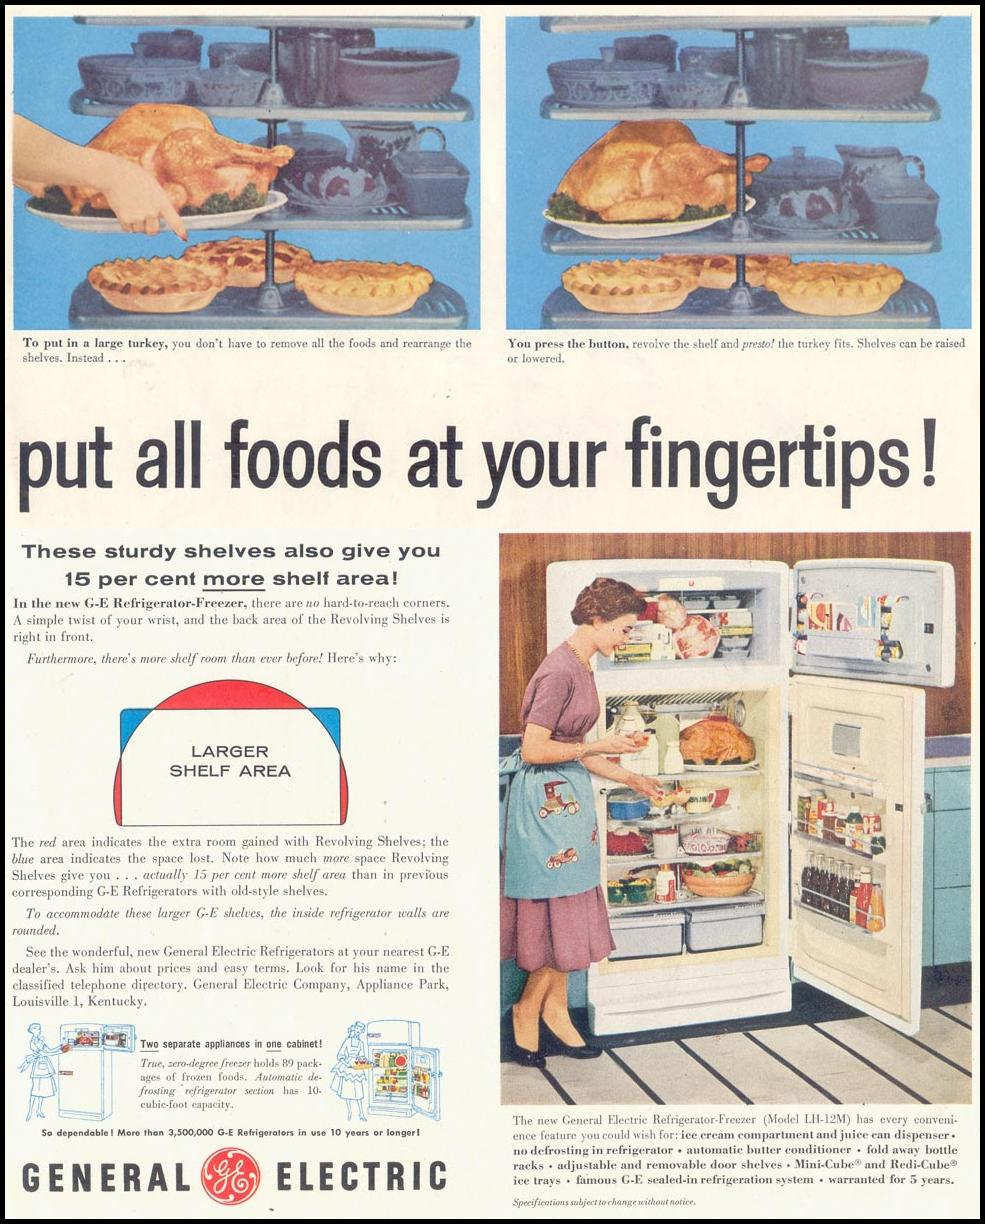 GENERAL ELECTRIC REFRIGERATORS SATURDAY EVENING POST 06/04/1955